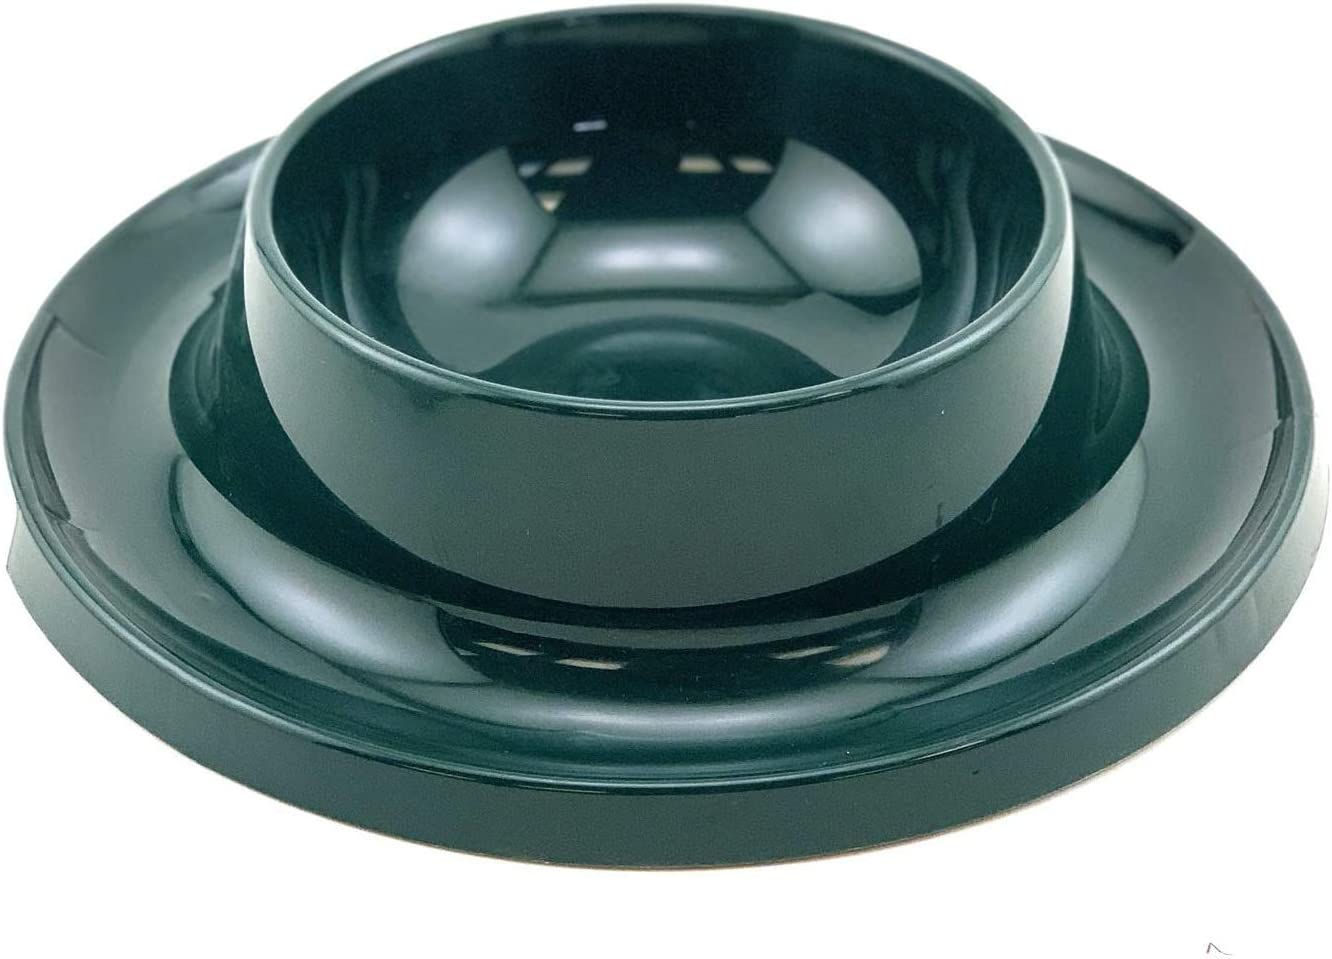 Lixit Ant Free Bowls for Small and Medium Size Dogs.